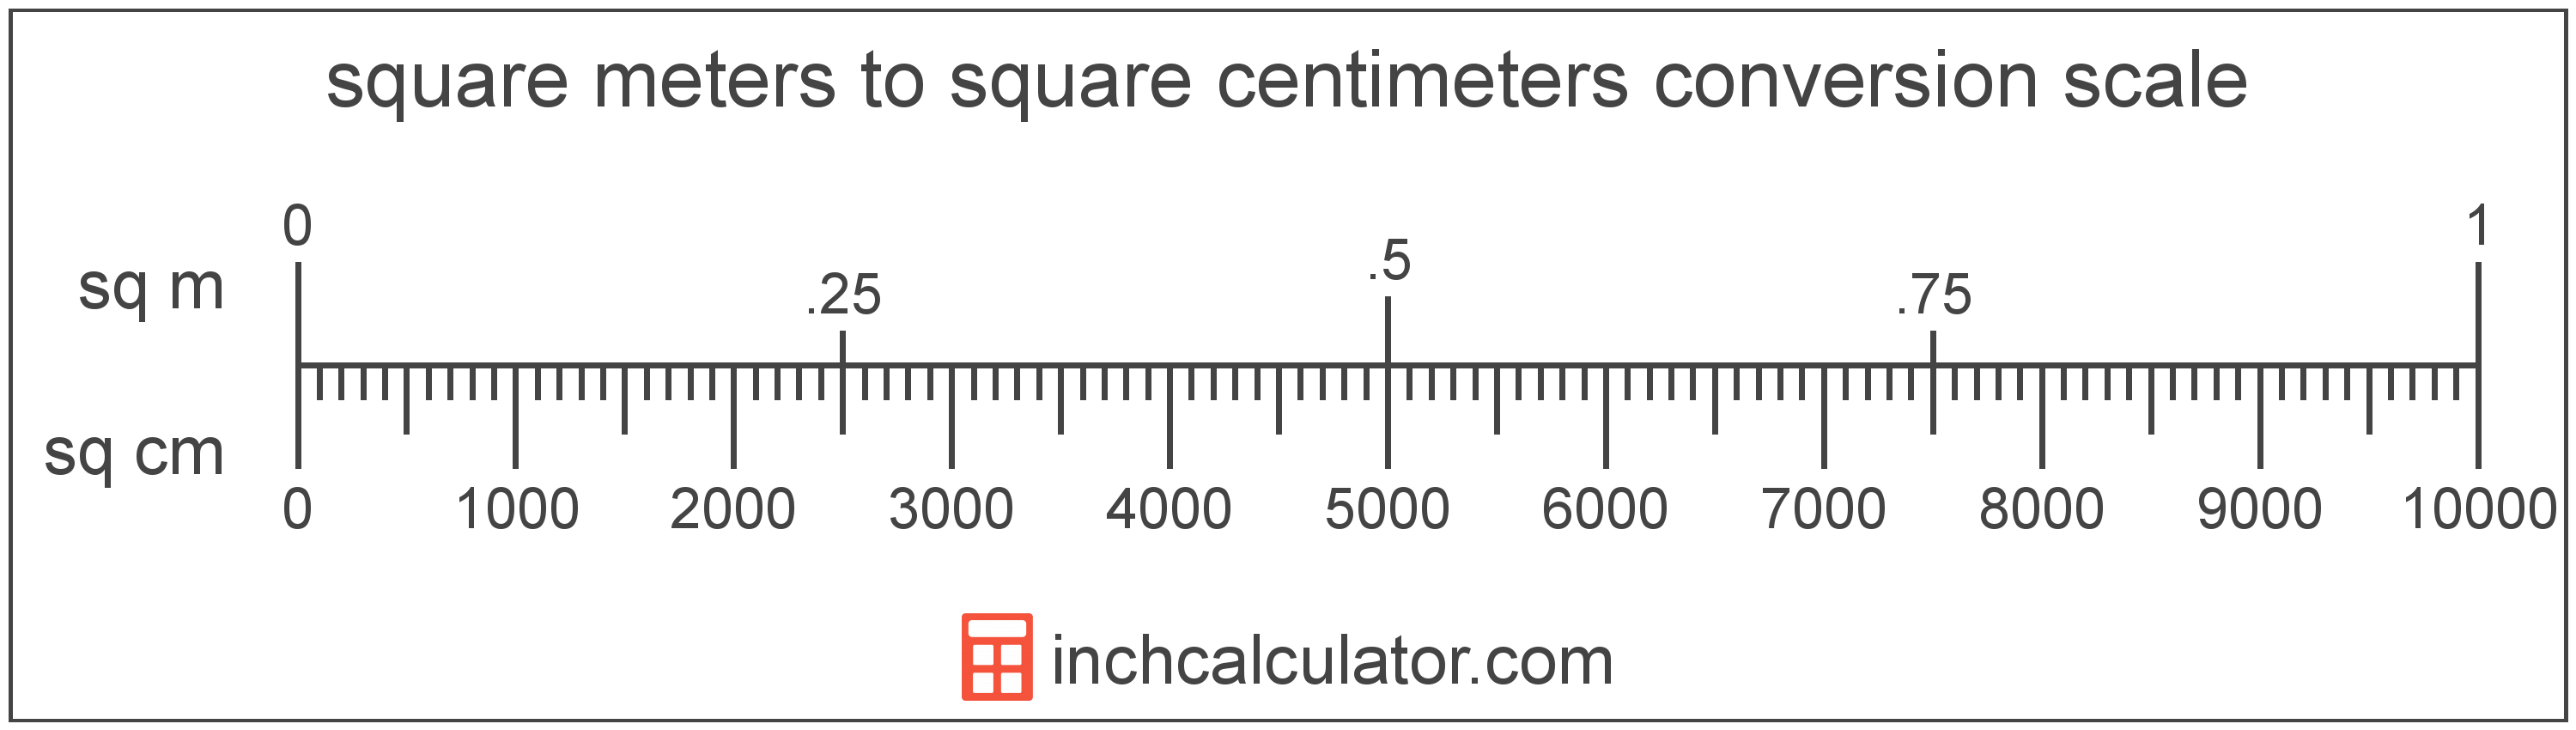 conversion scale showing square meters and equivalent square centimeters area values